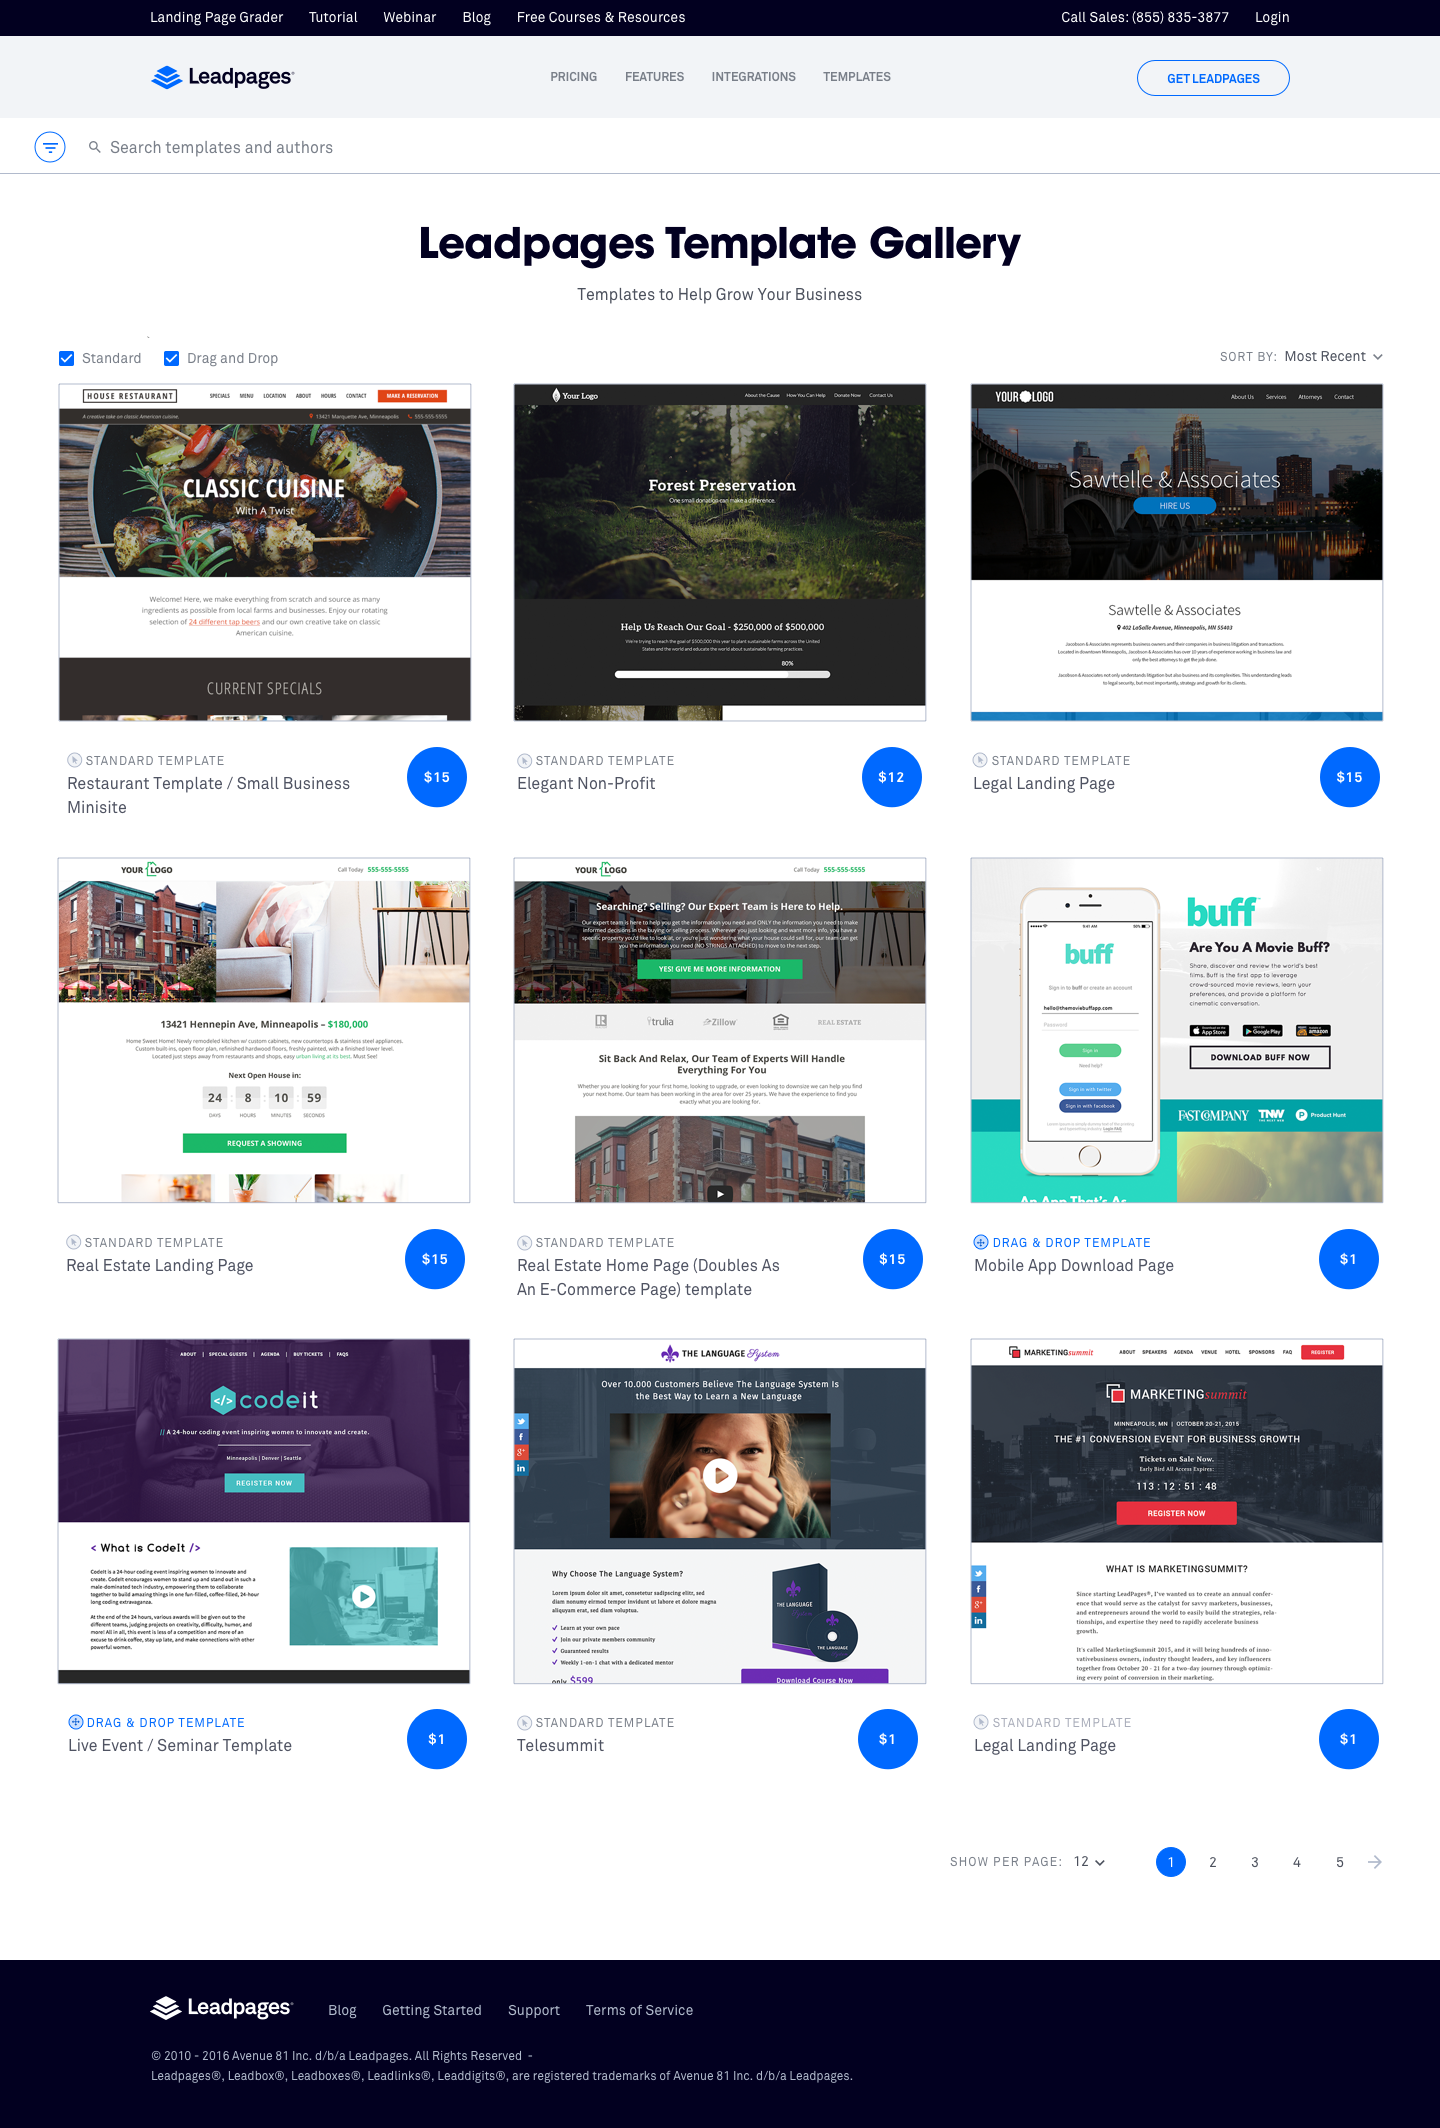 8 Easy Facts About Leadpages Marketplace Explained